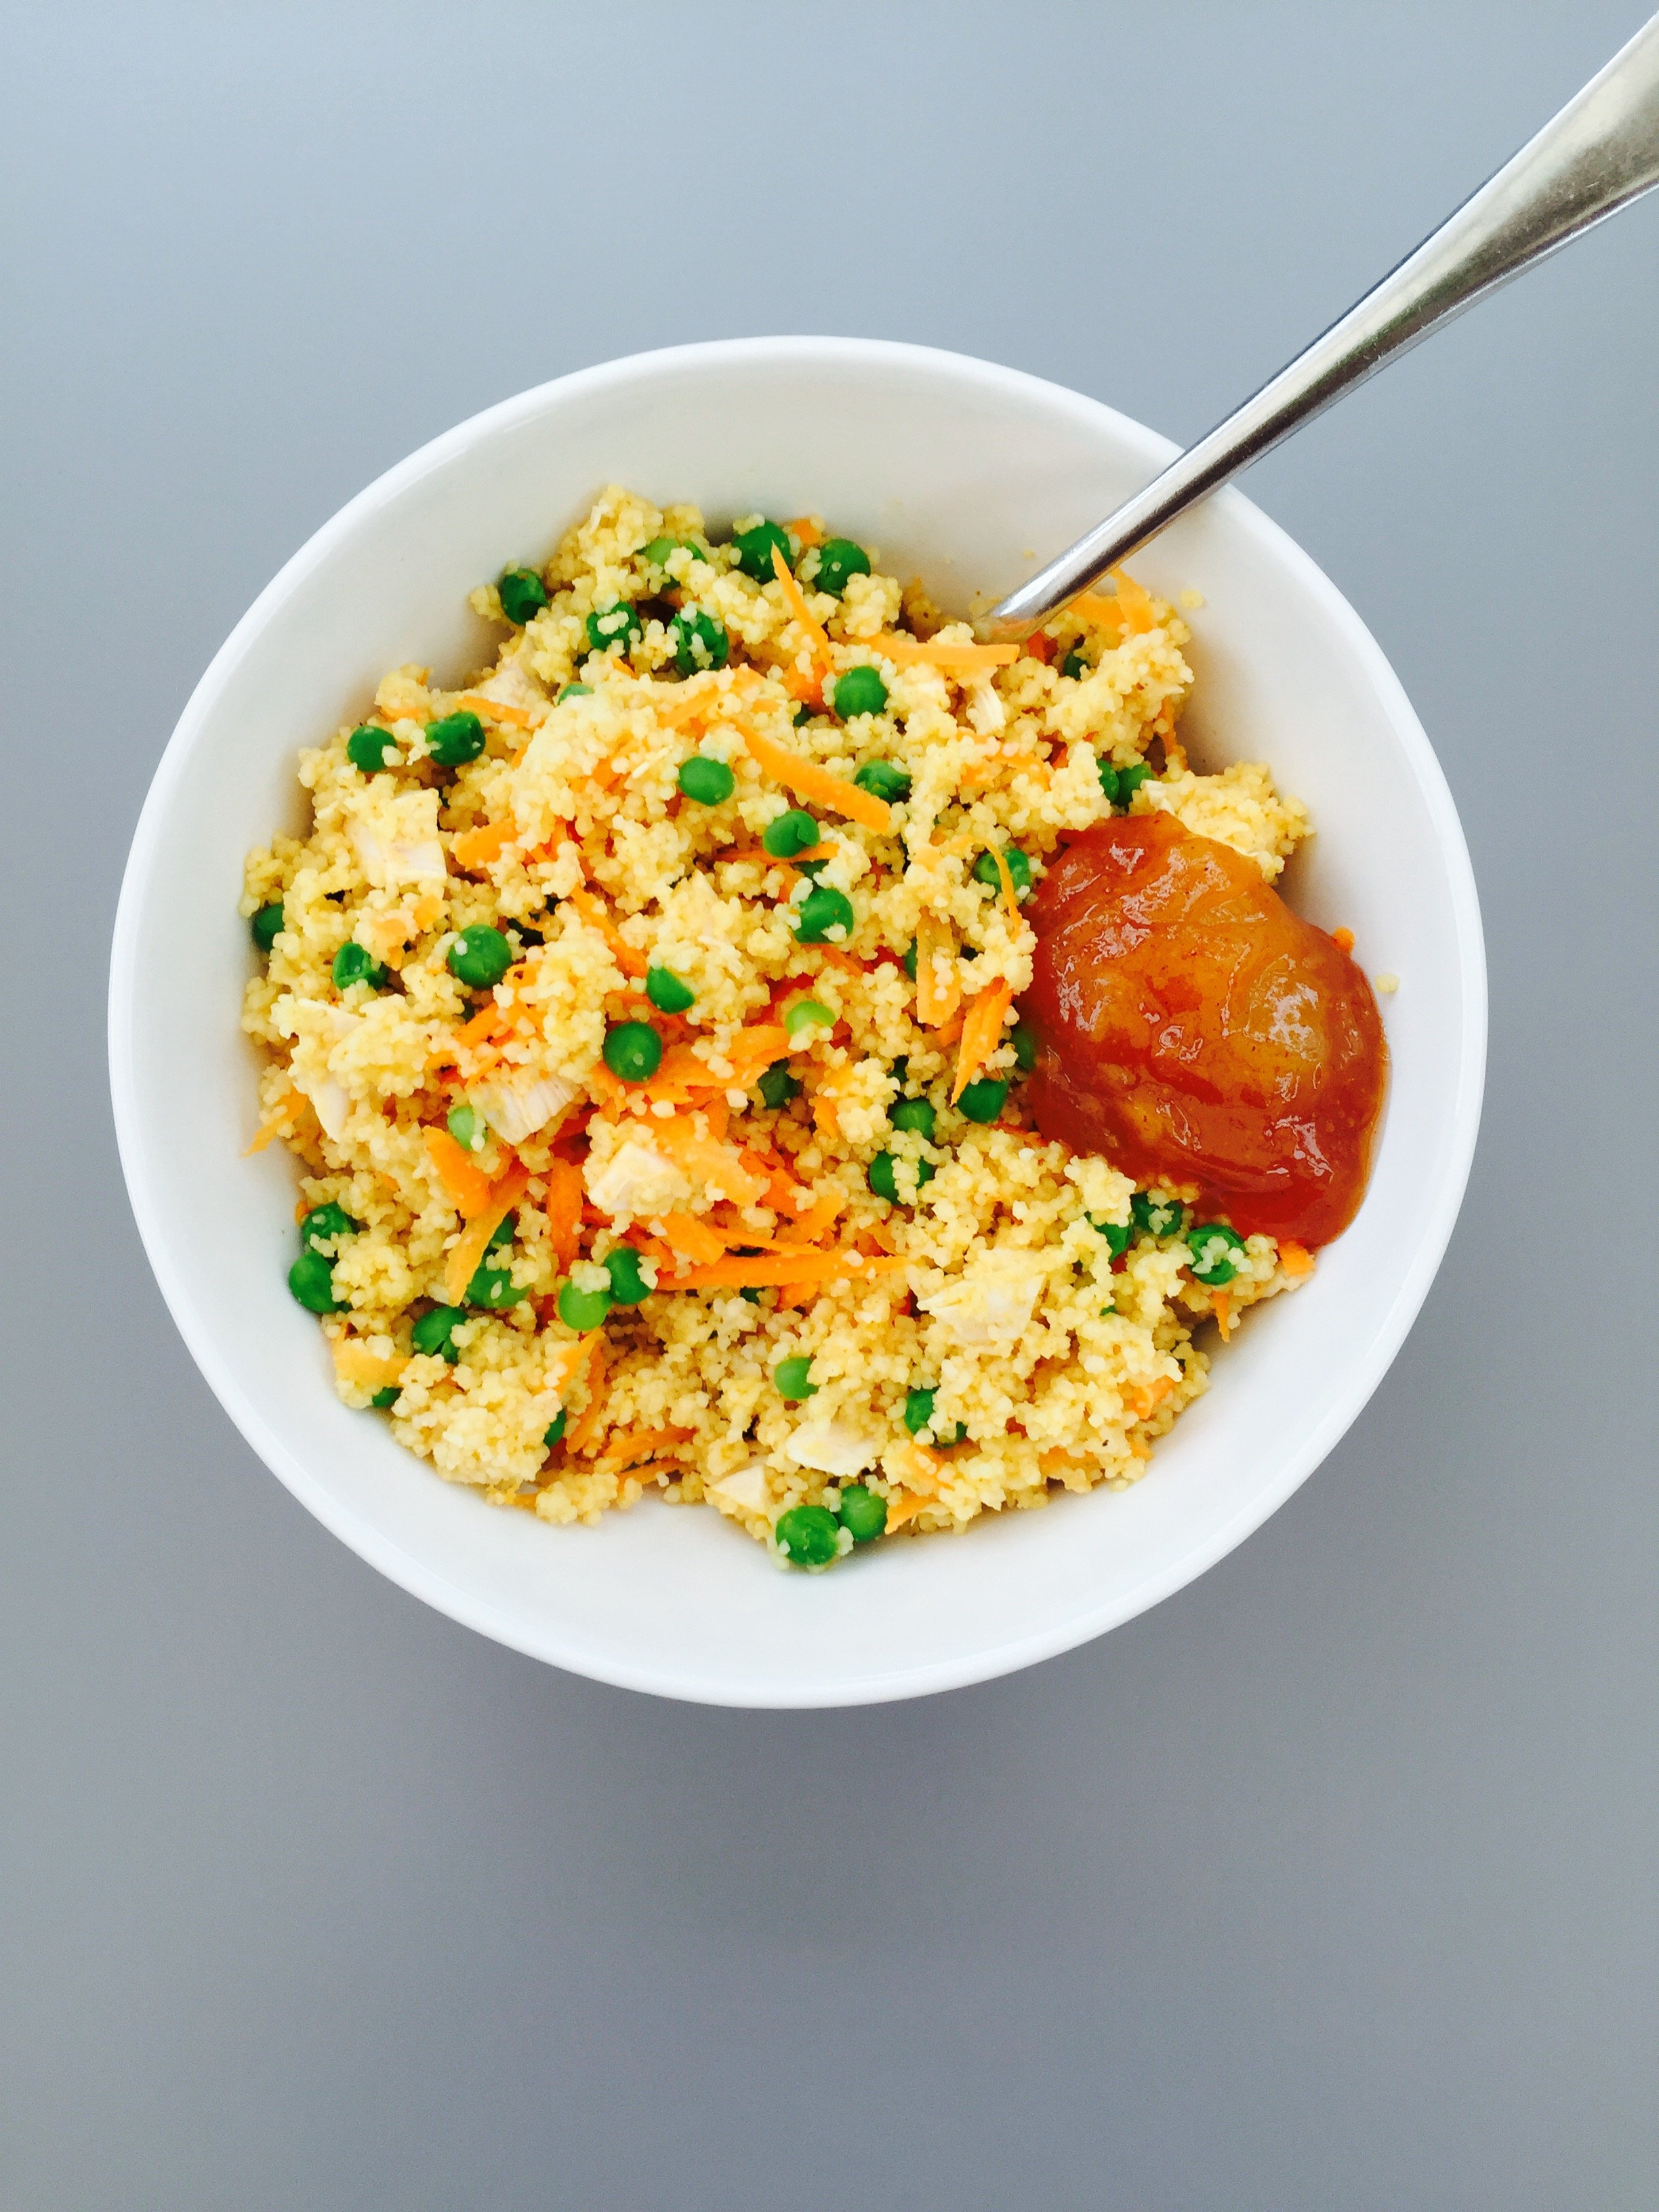 Yummy Spicy Food Recipes Spicy Chicken Couscous Recipe